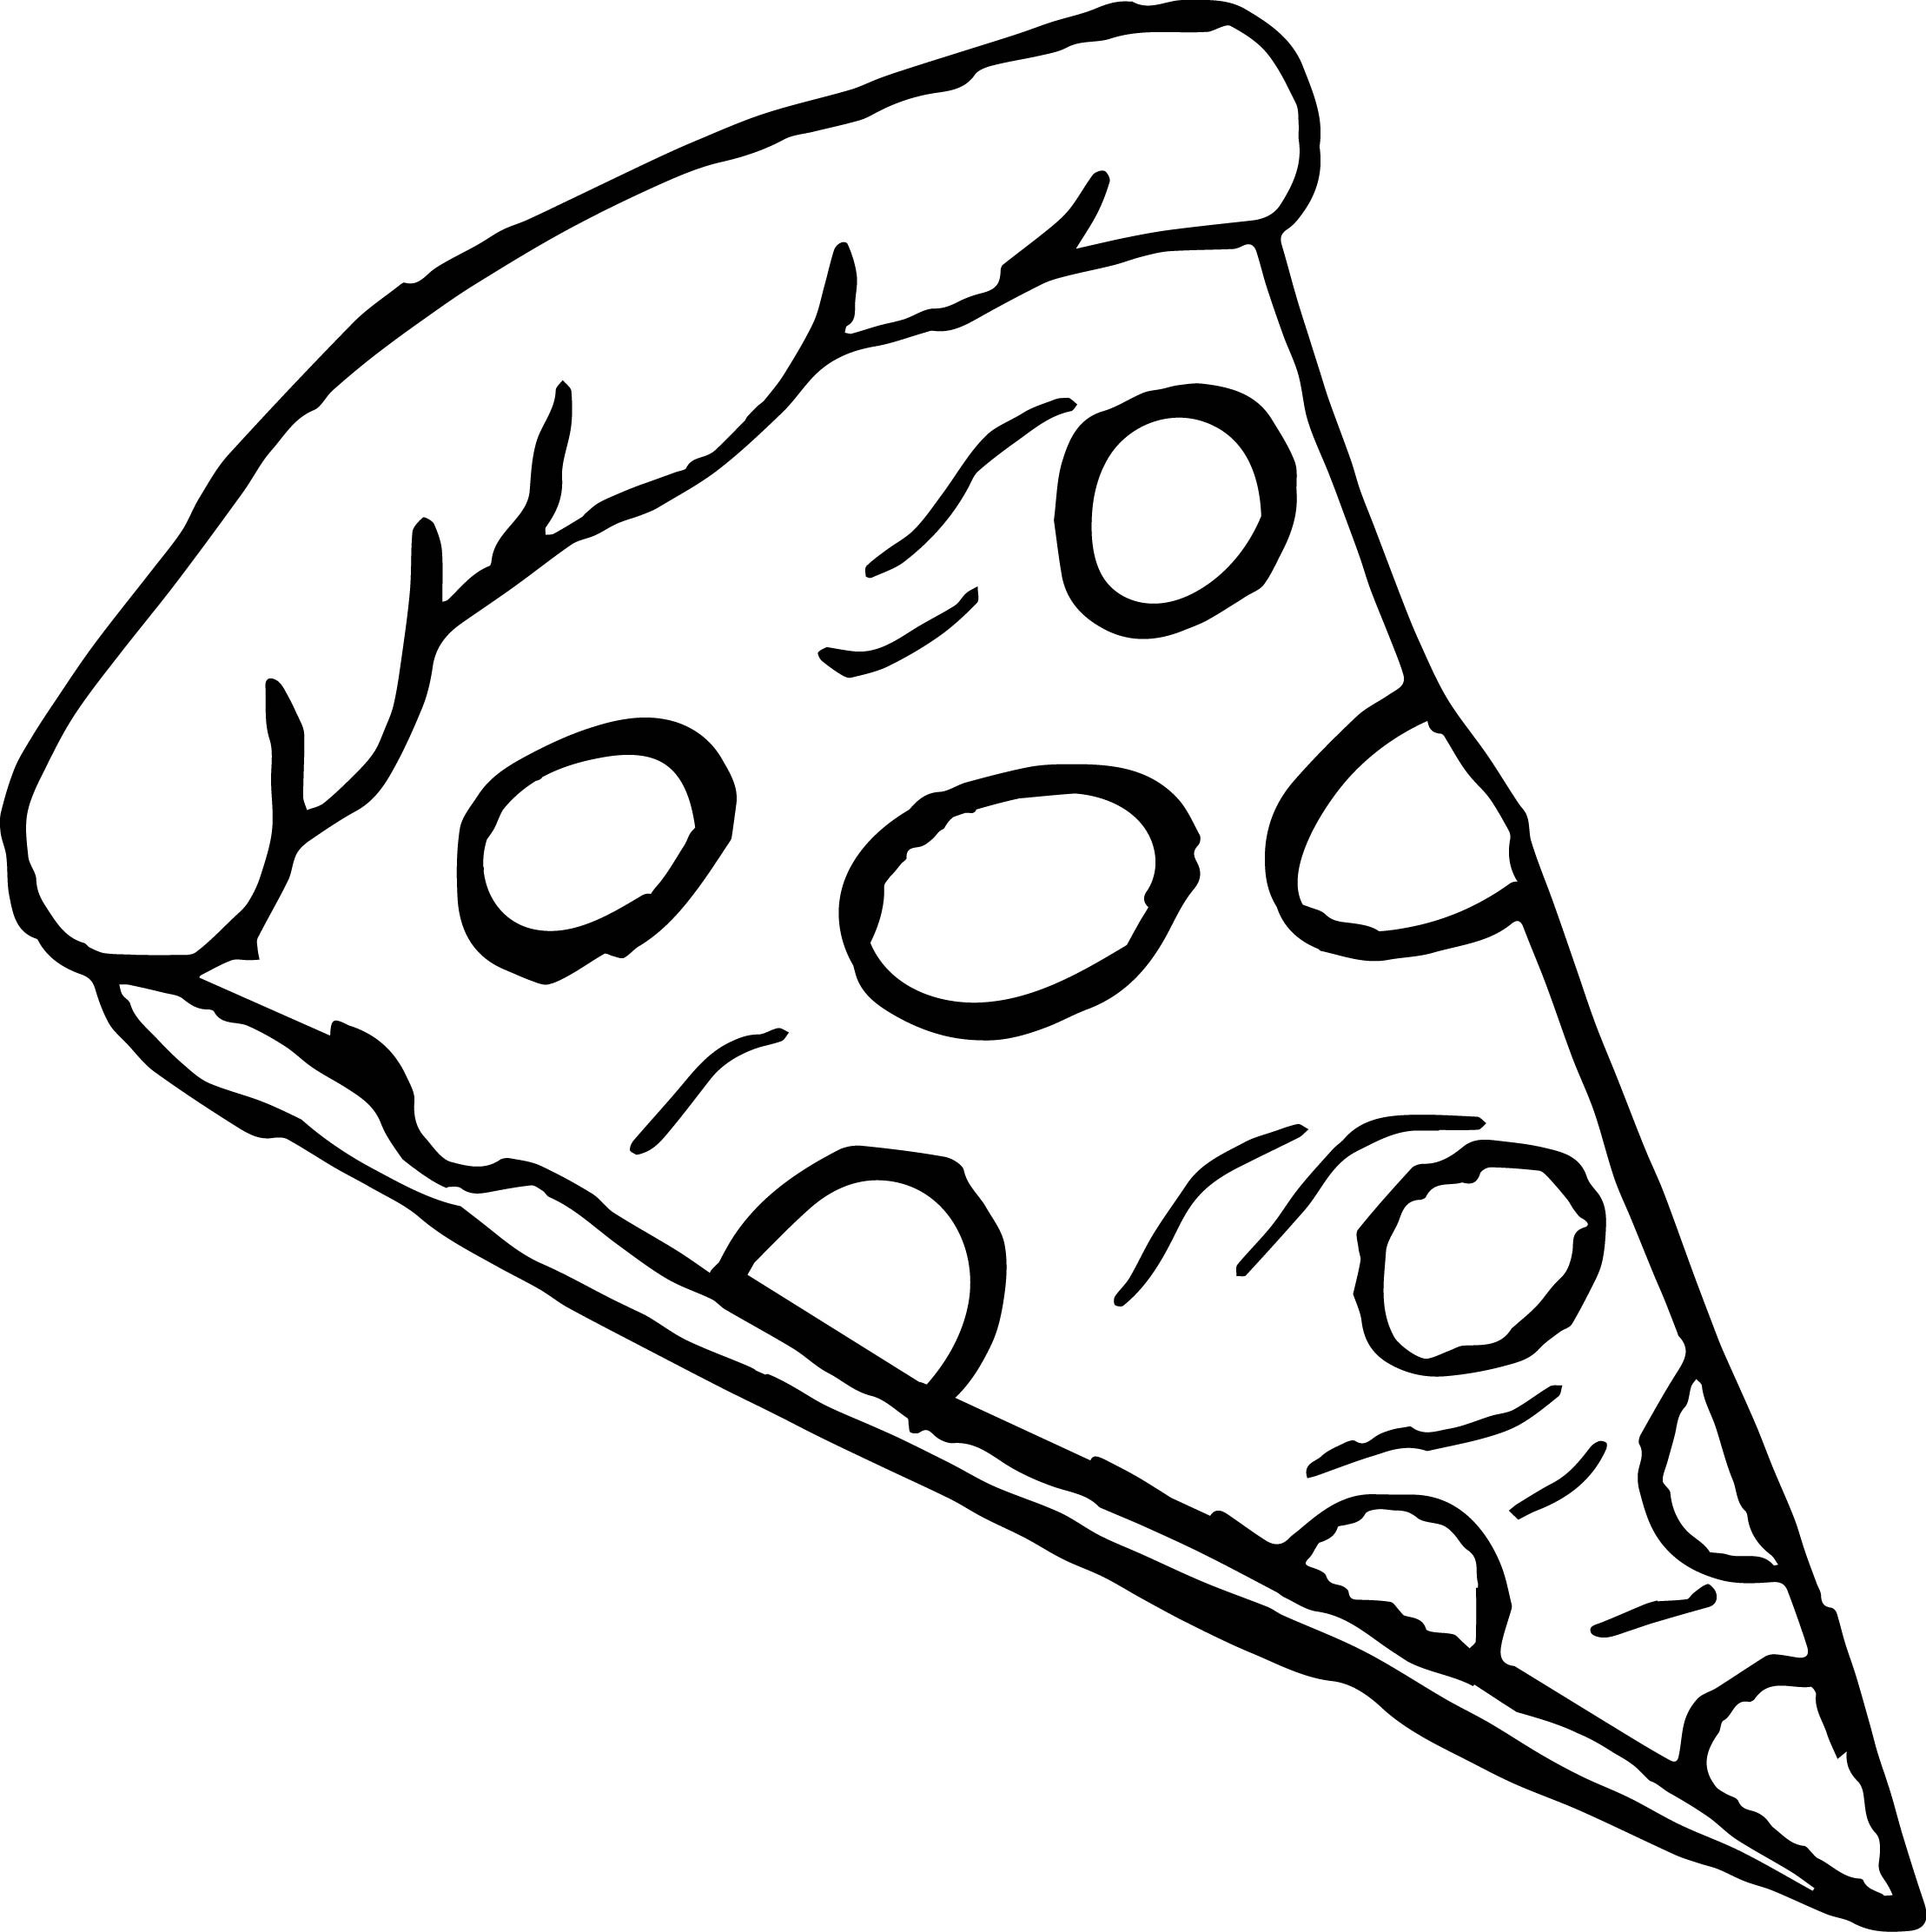 pizza drawing images at getdrawings com free for personal use pizza drawing images of your choice french clip art girl france clip art